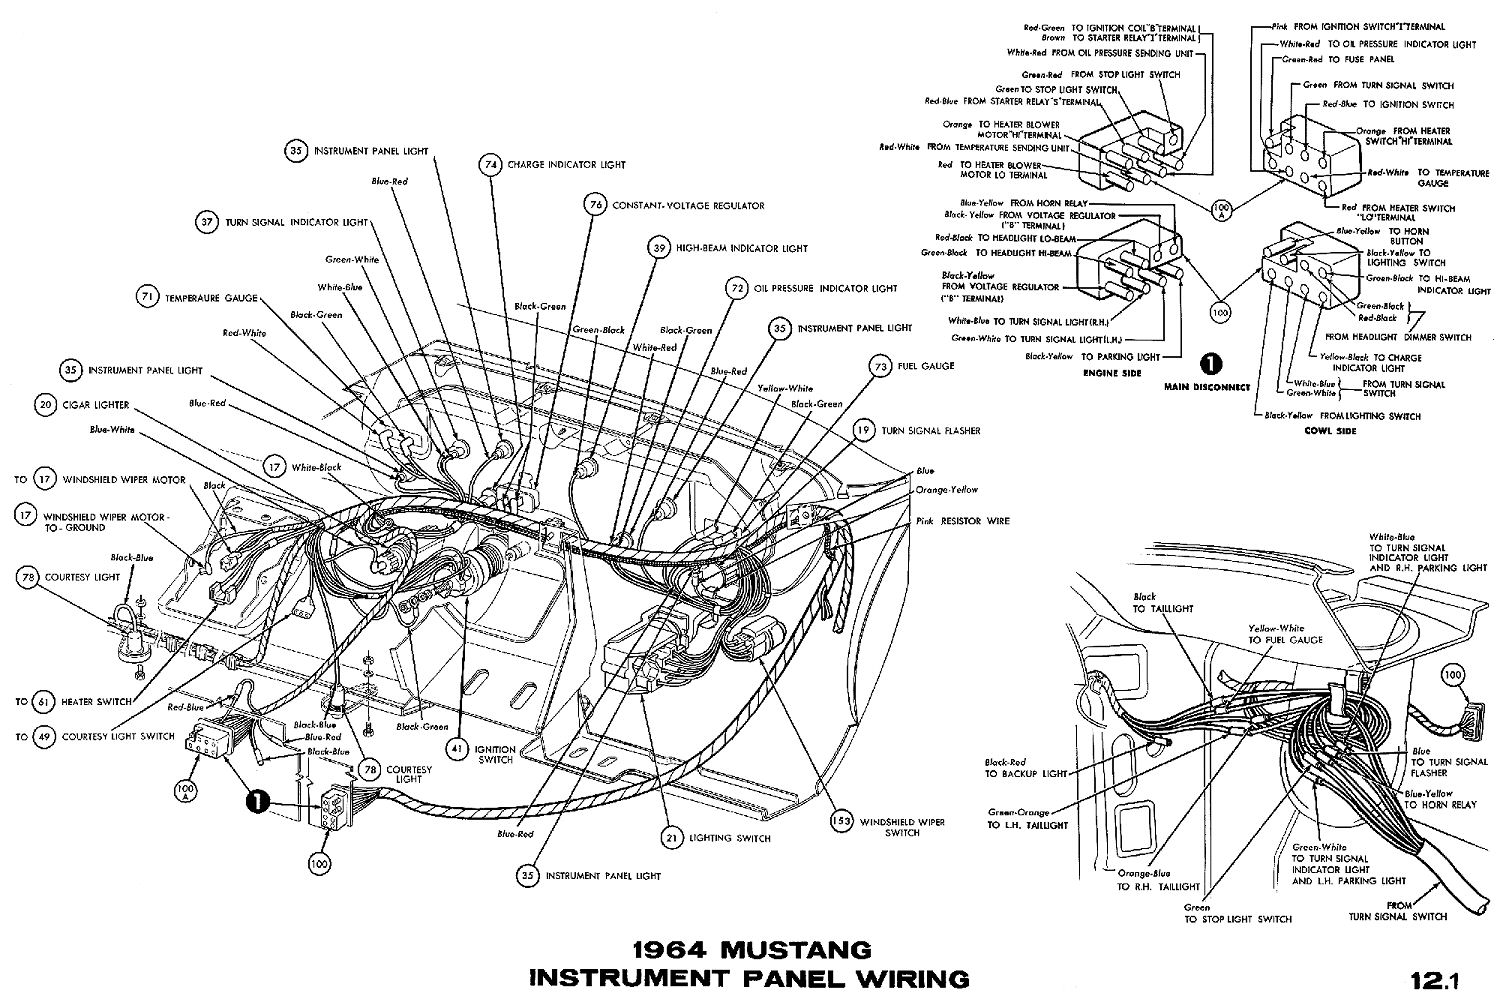 1964b 1964 mustang wiring diagrams average joe restoration F100 Wiring Diagram at mr168.co